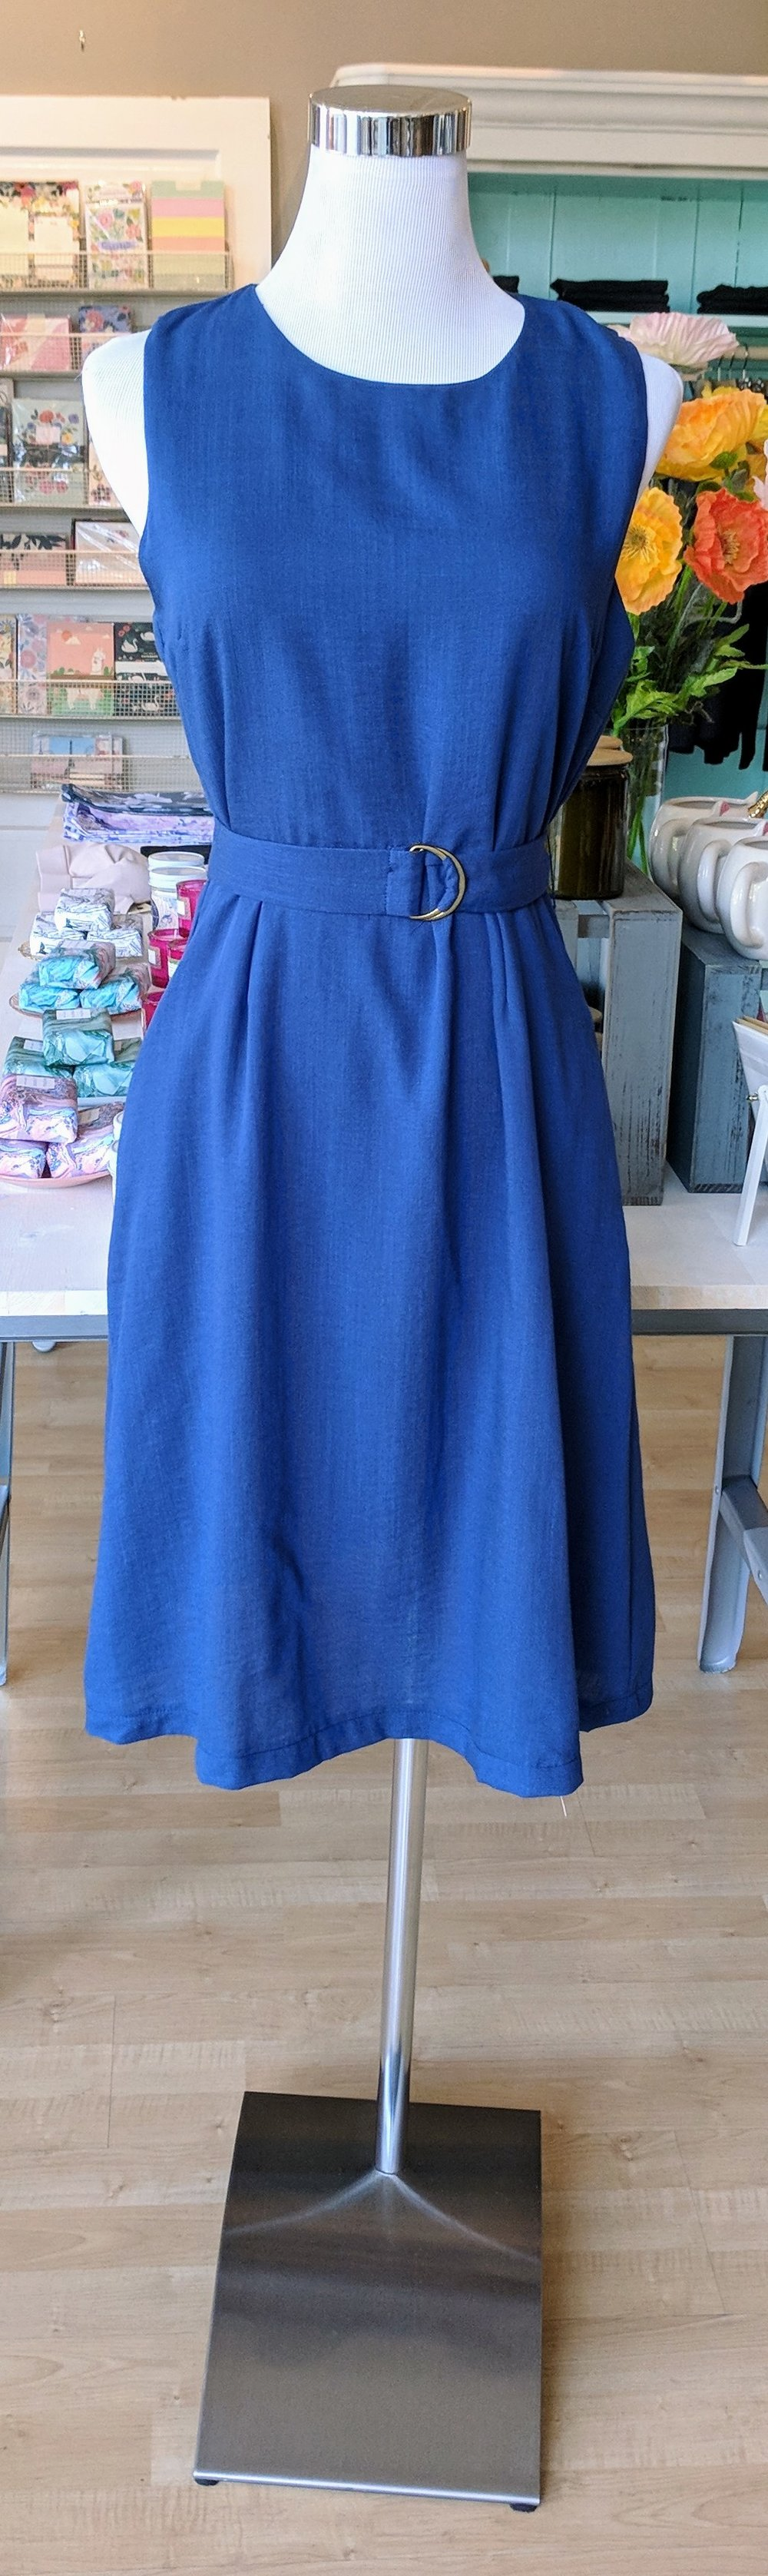 Blue midi dress with belt.